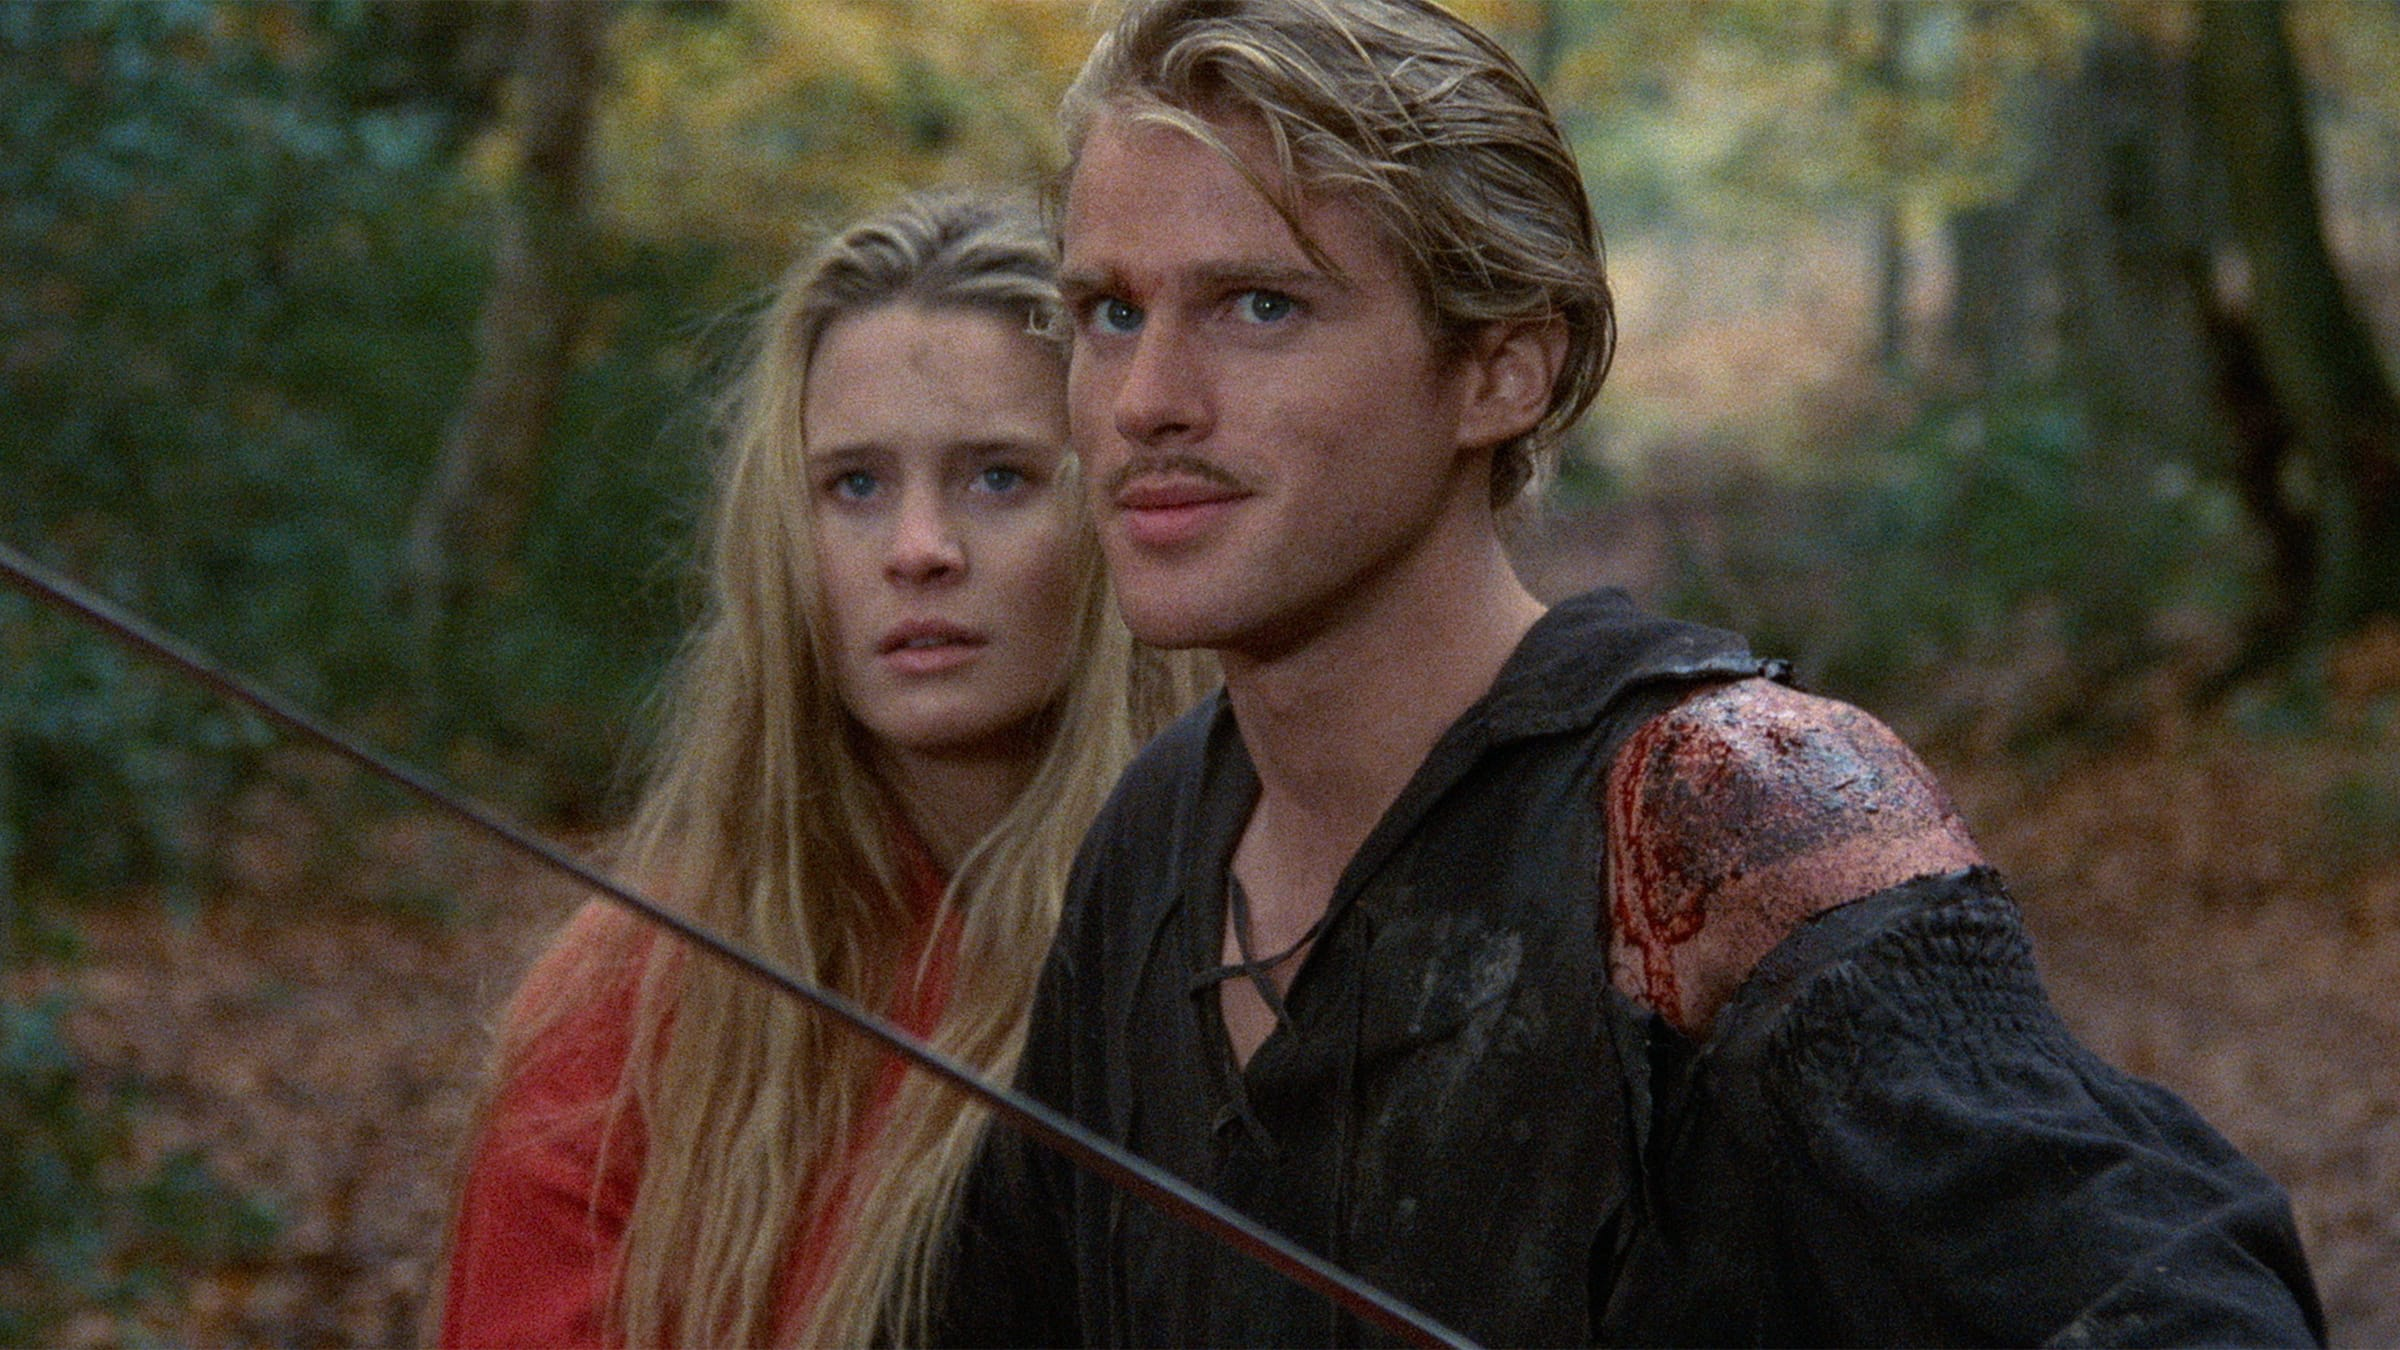 Let Me Sum Up  2018—The Princess Bride for The Criterion Collection